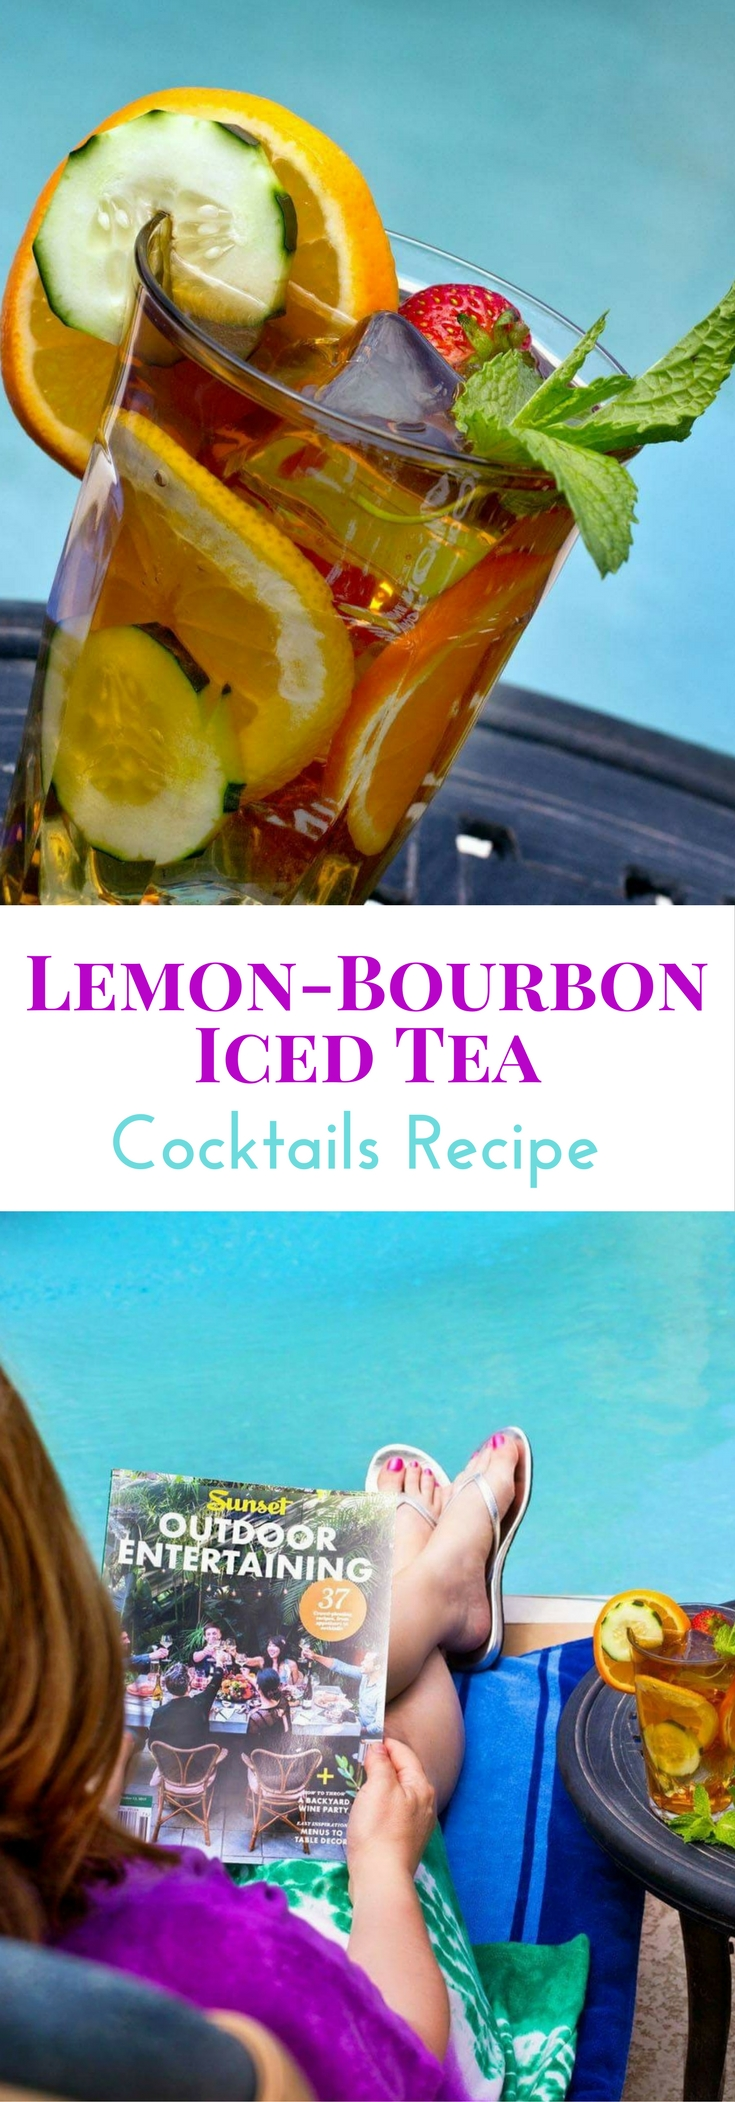 Lemon-Bourbon Iced Tea Cocktails are a favorite summer drink. You'll love the combo of classic flavors!